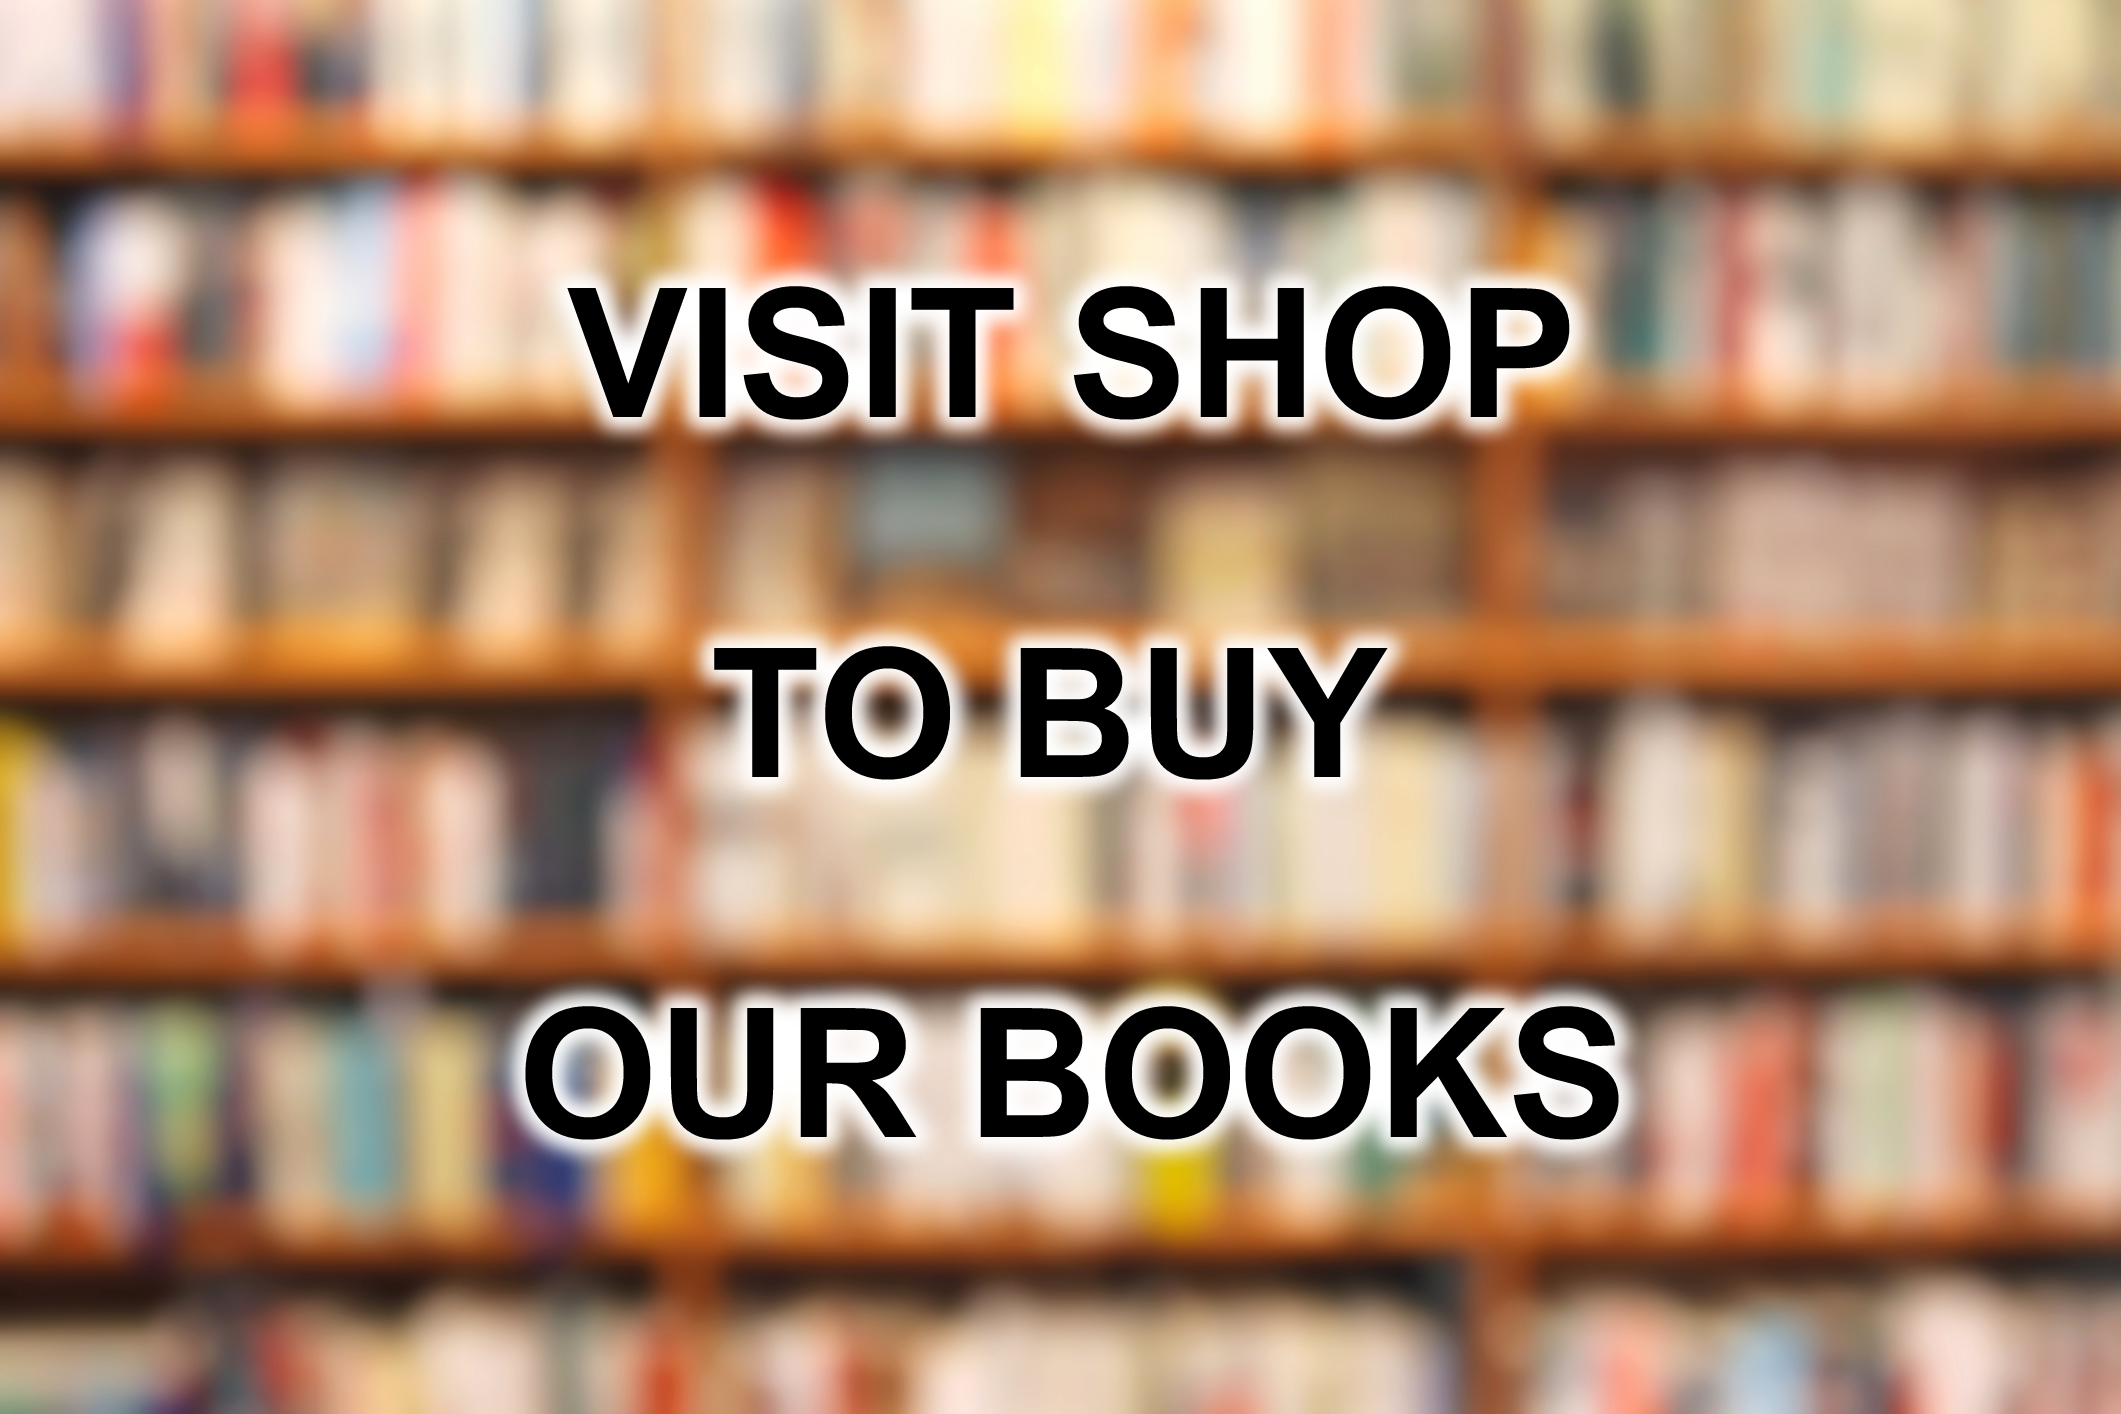 SHOP OUR BOOKS